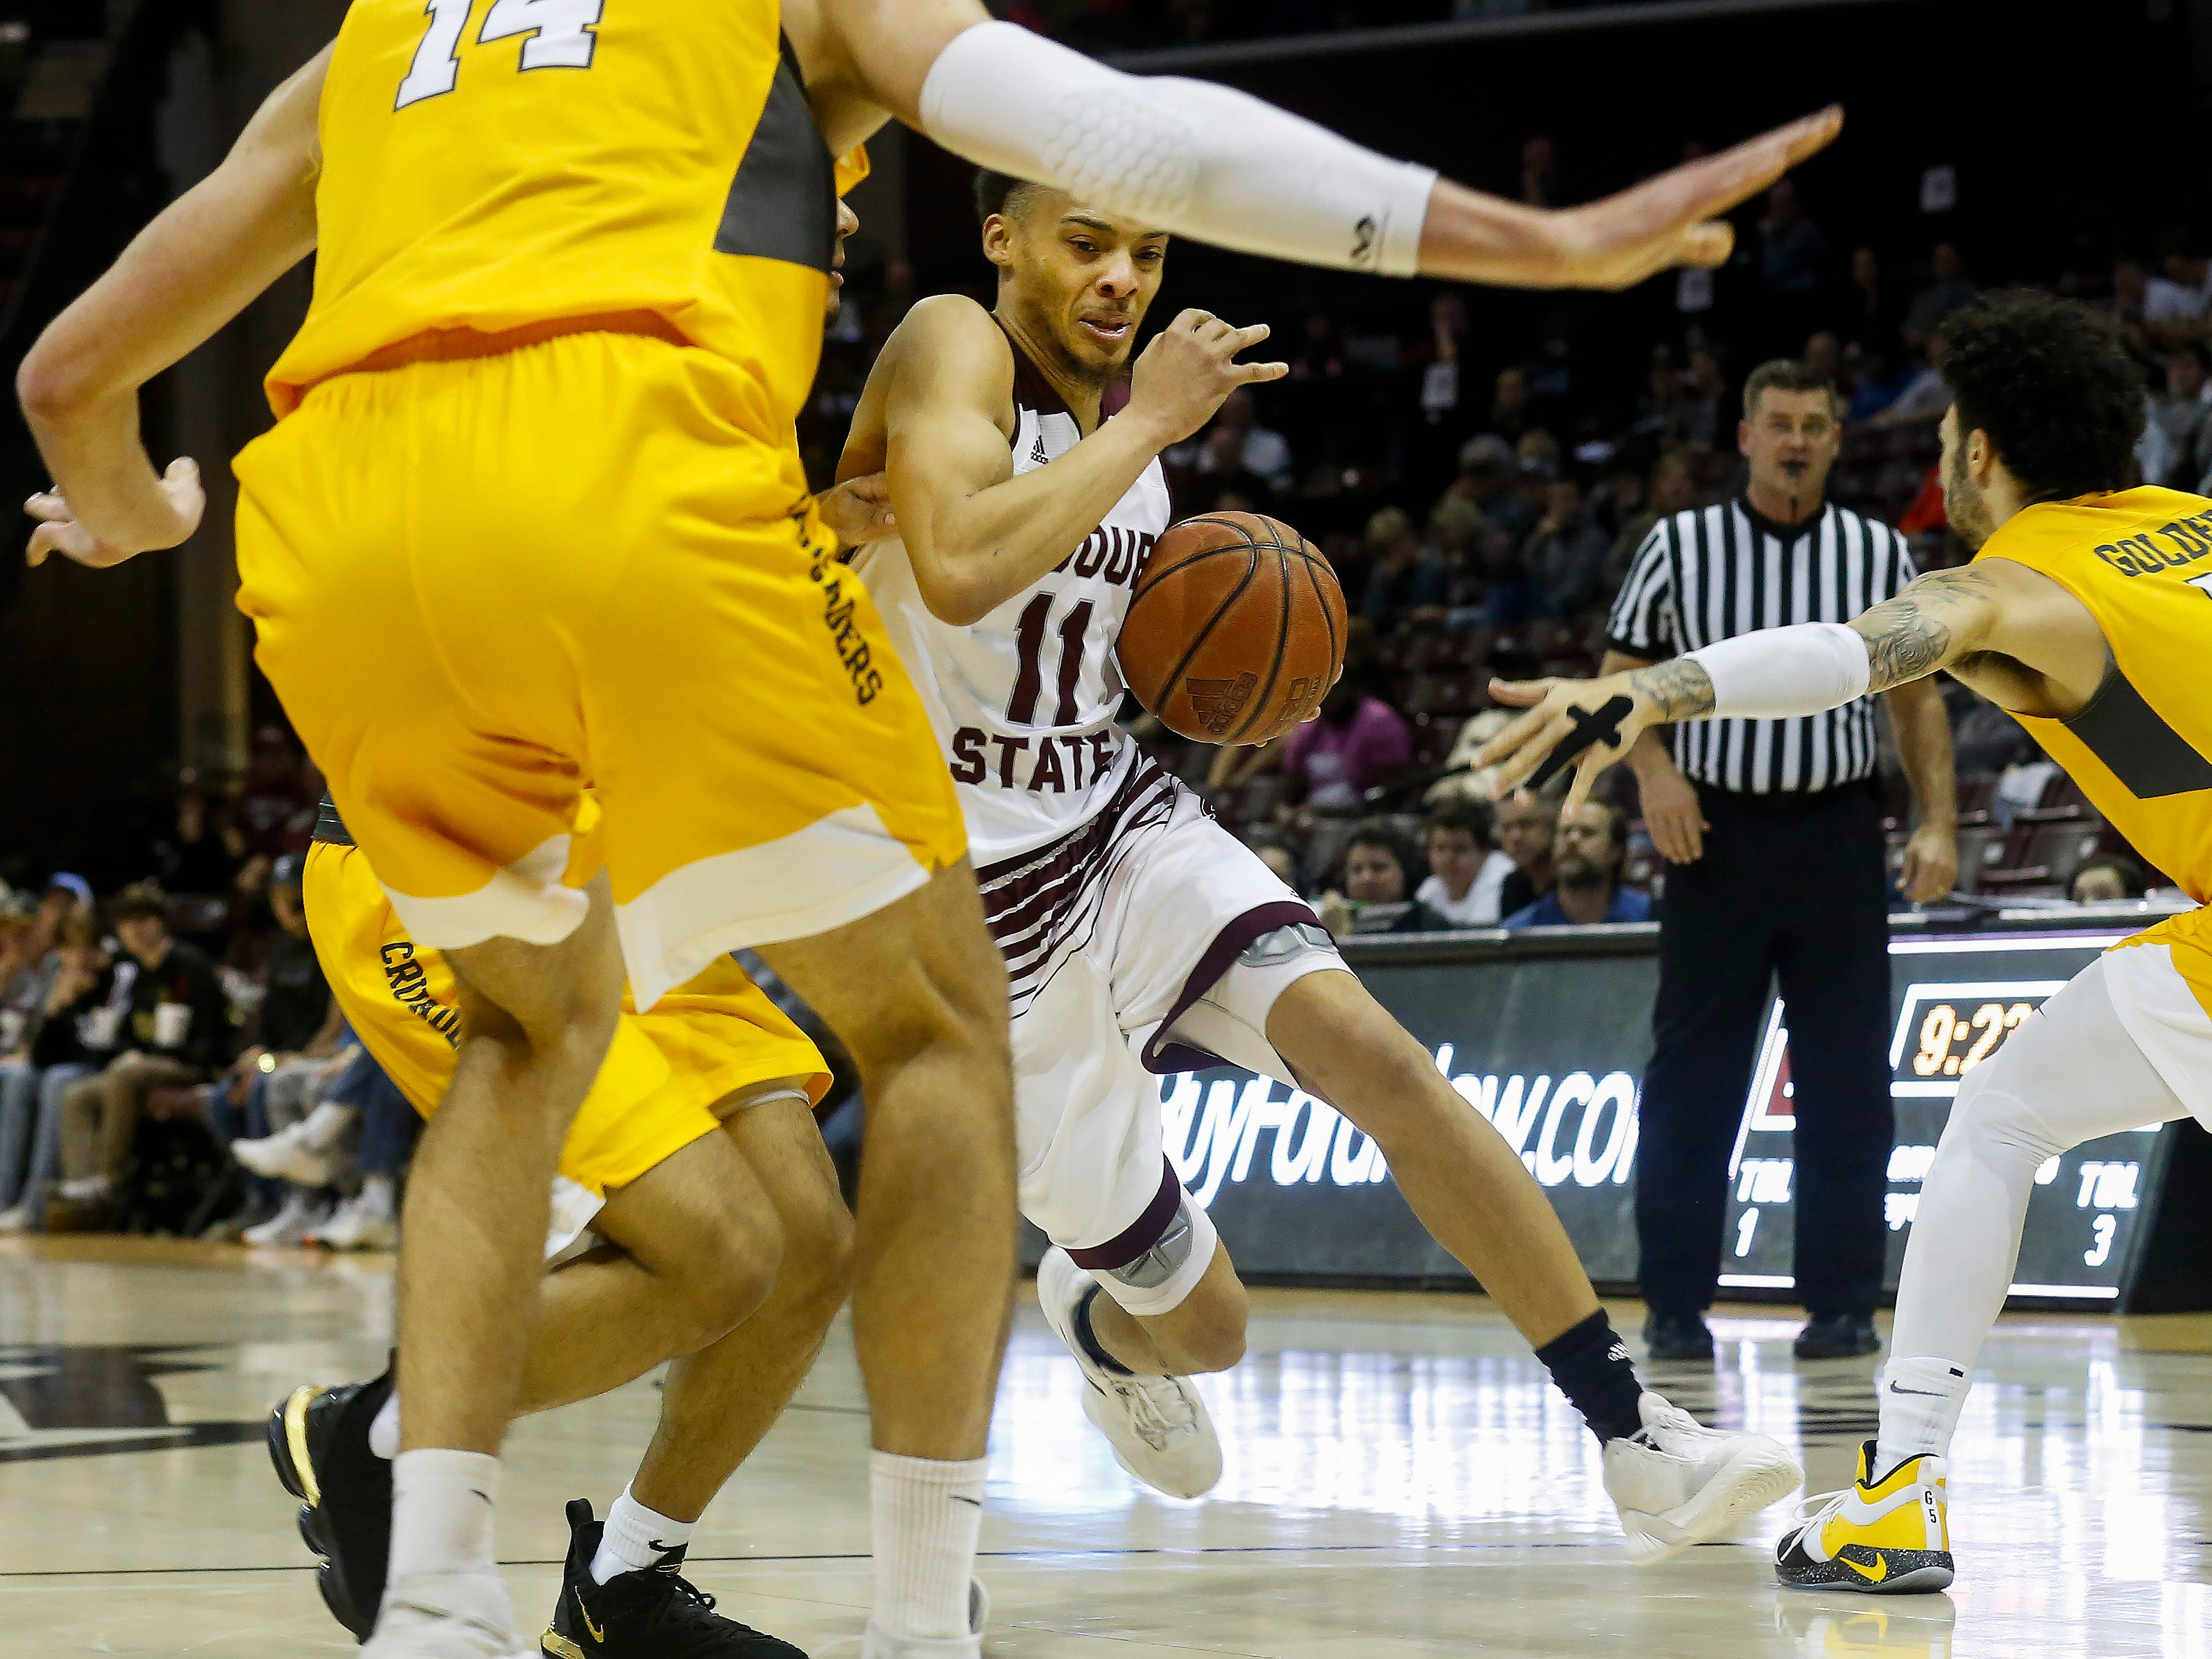 Jarred Dixon, of Missouri State University, drives to the net during the Bears game against Valparaiso at JQH Arena on Saturday, Jan. 5, 2018.